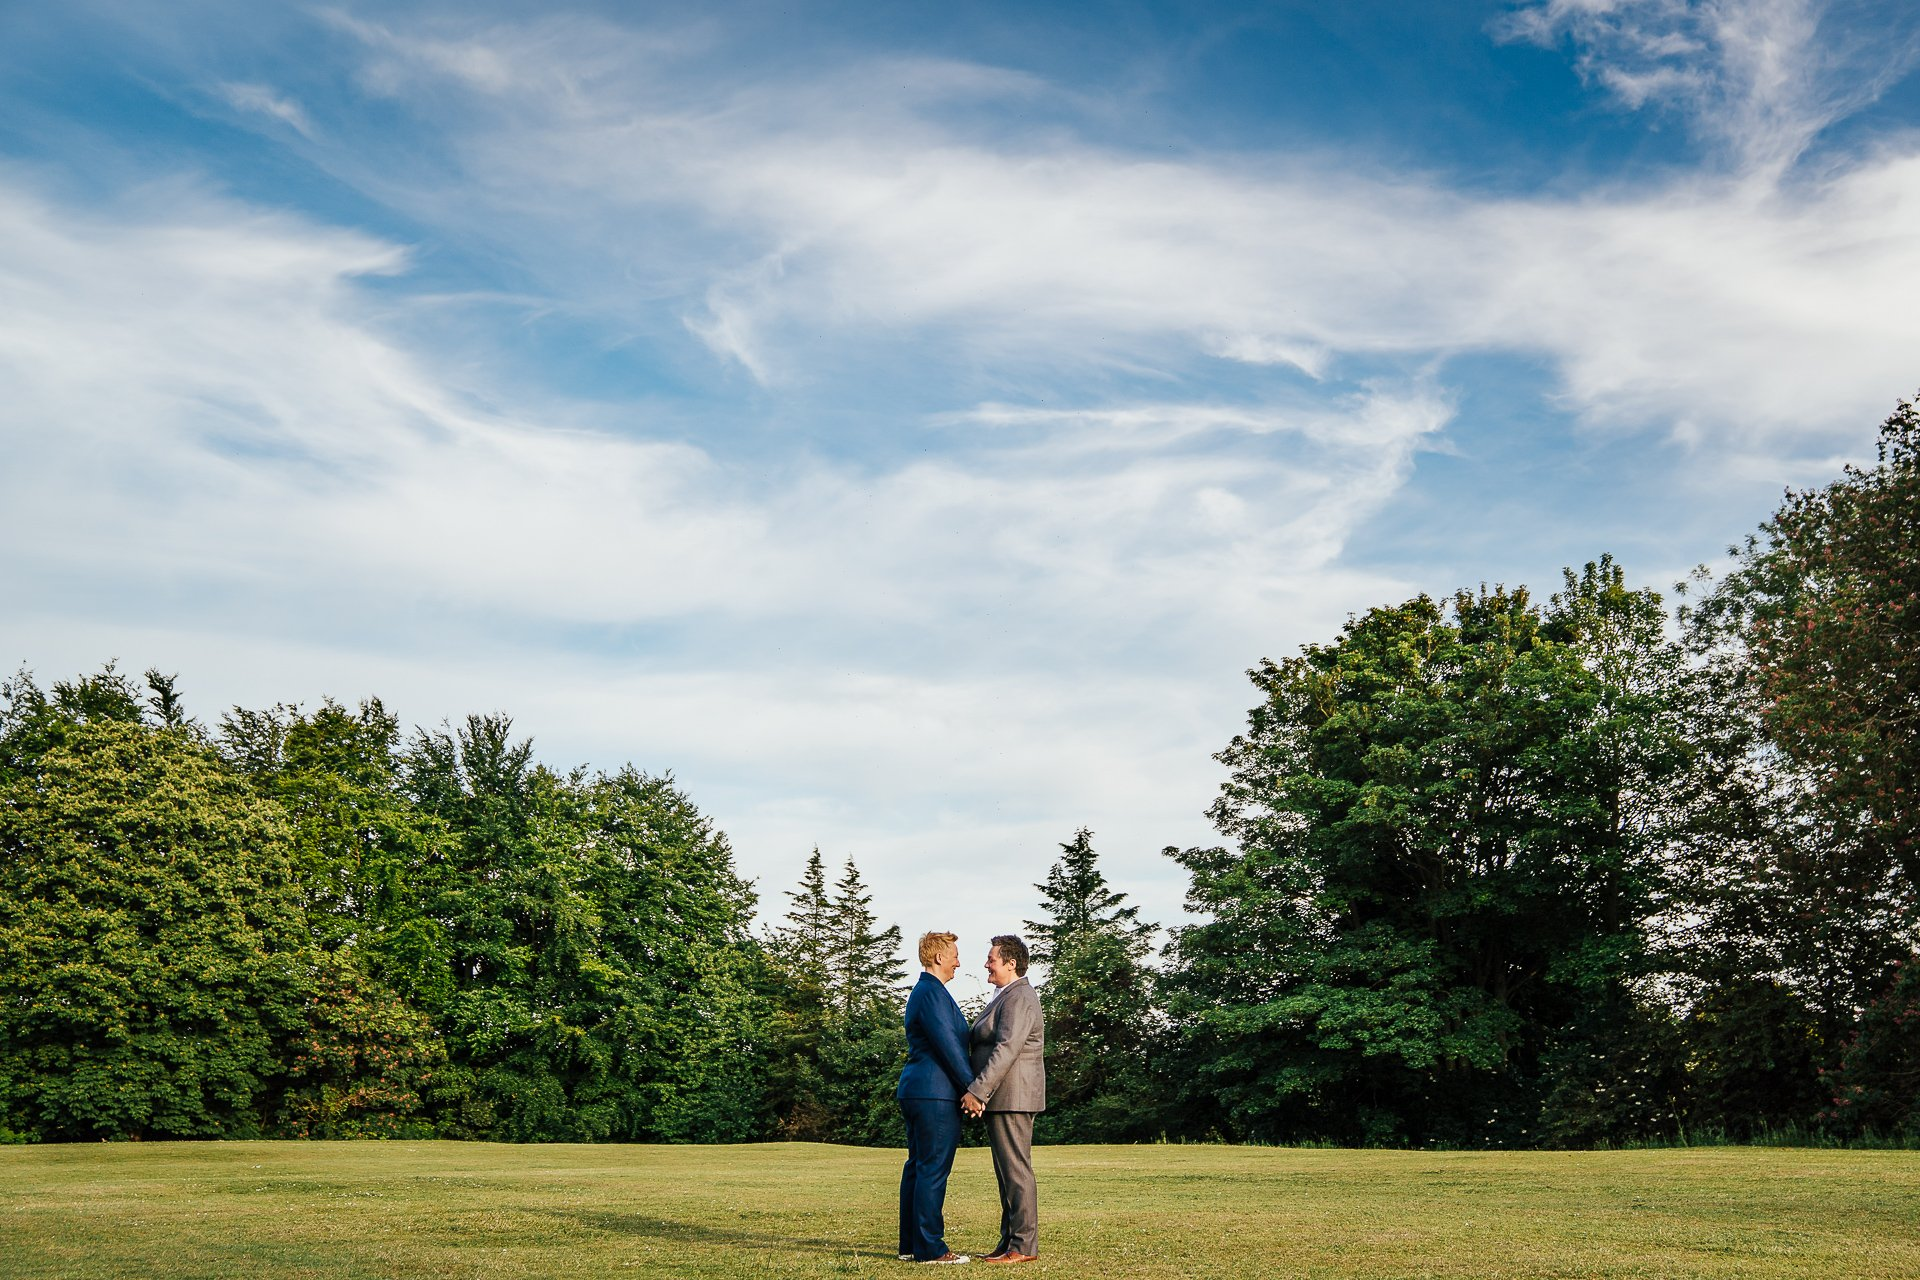 Two brides embracing in a field under blue sky